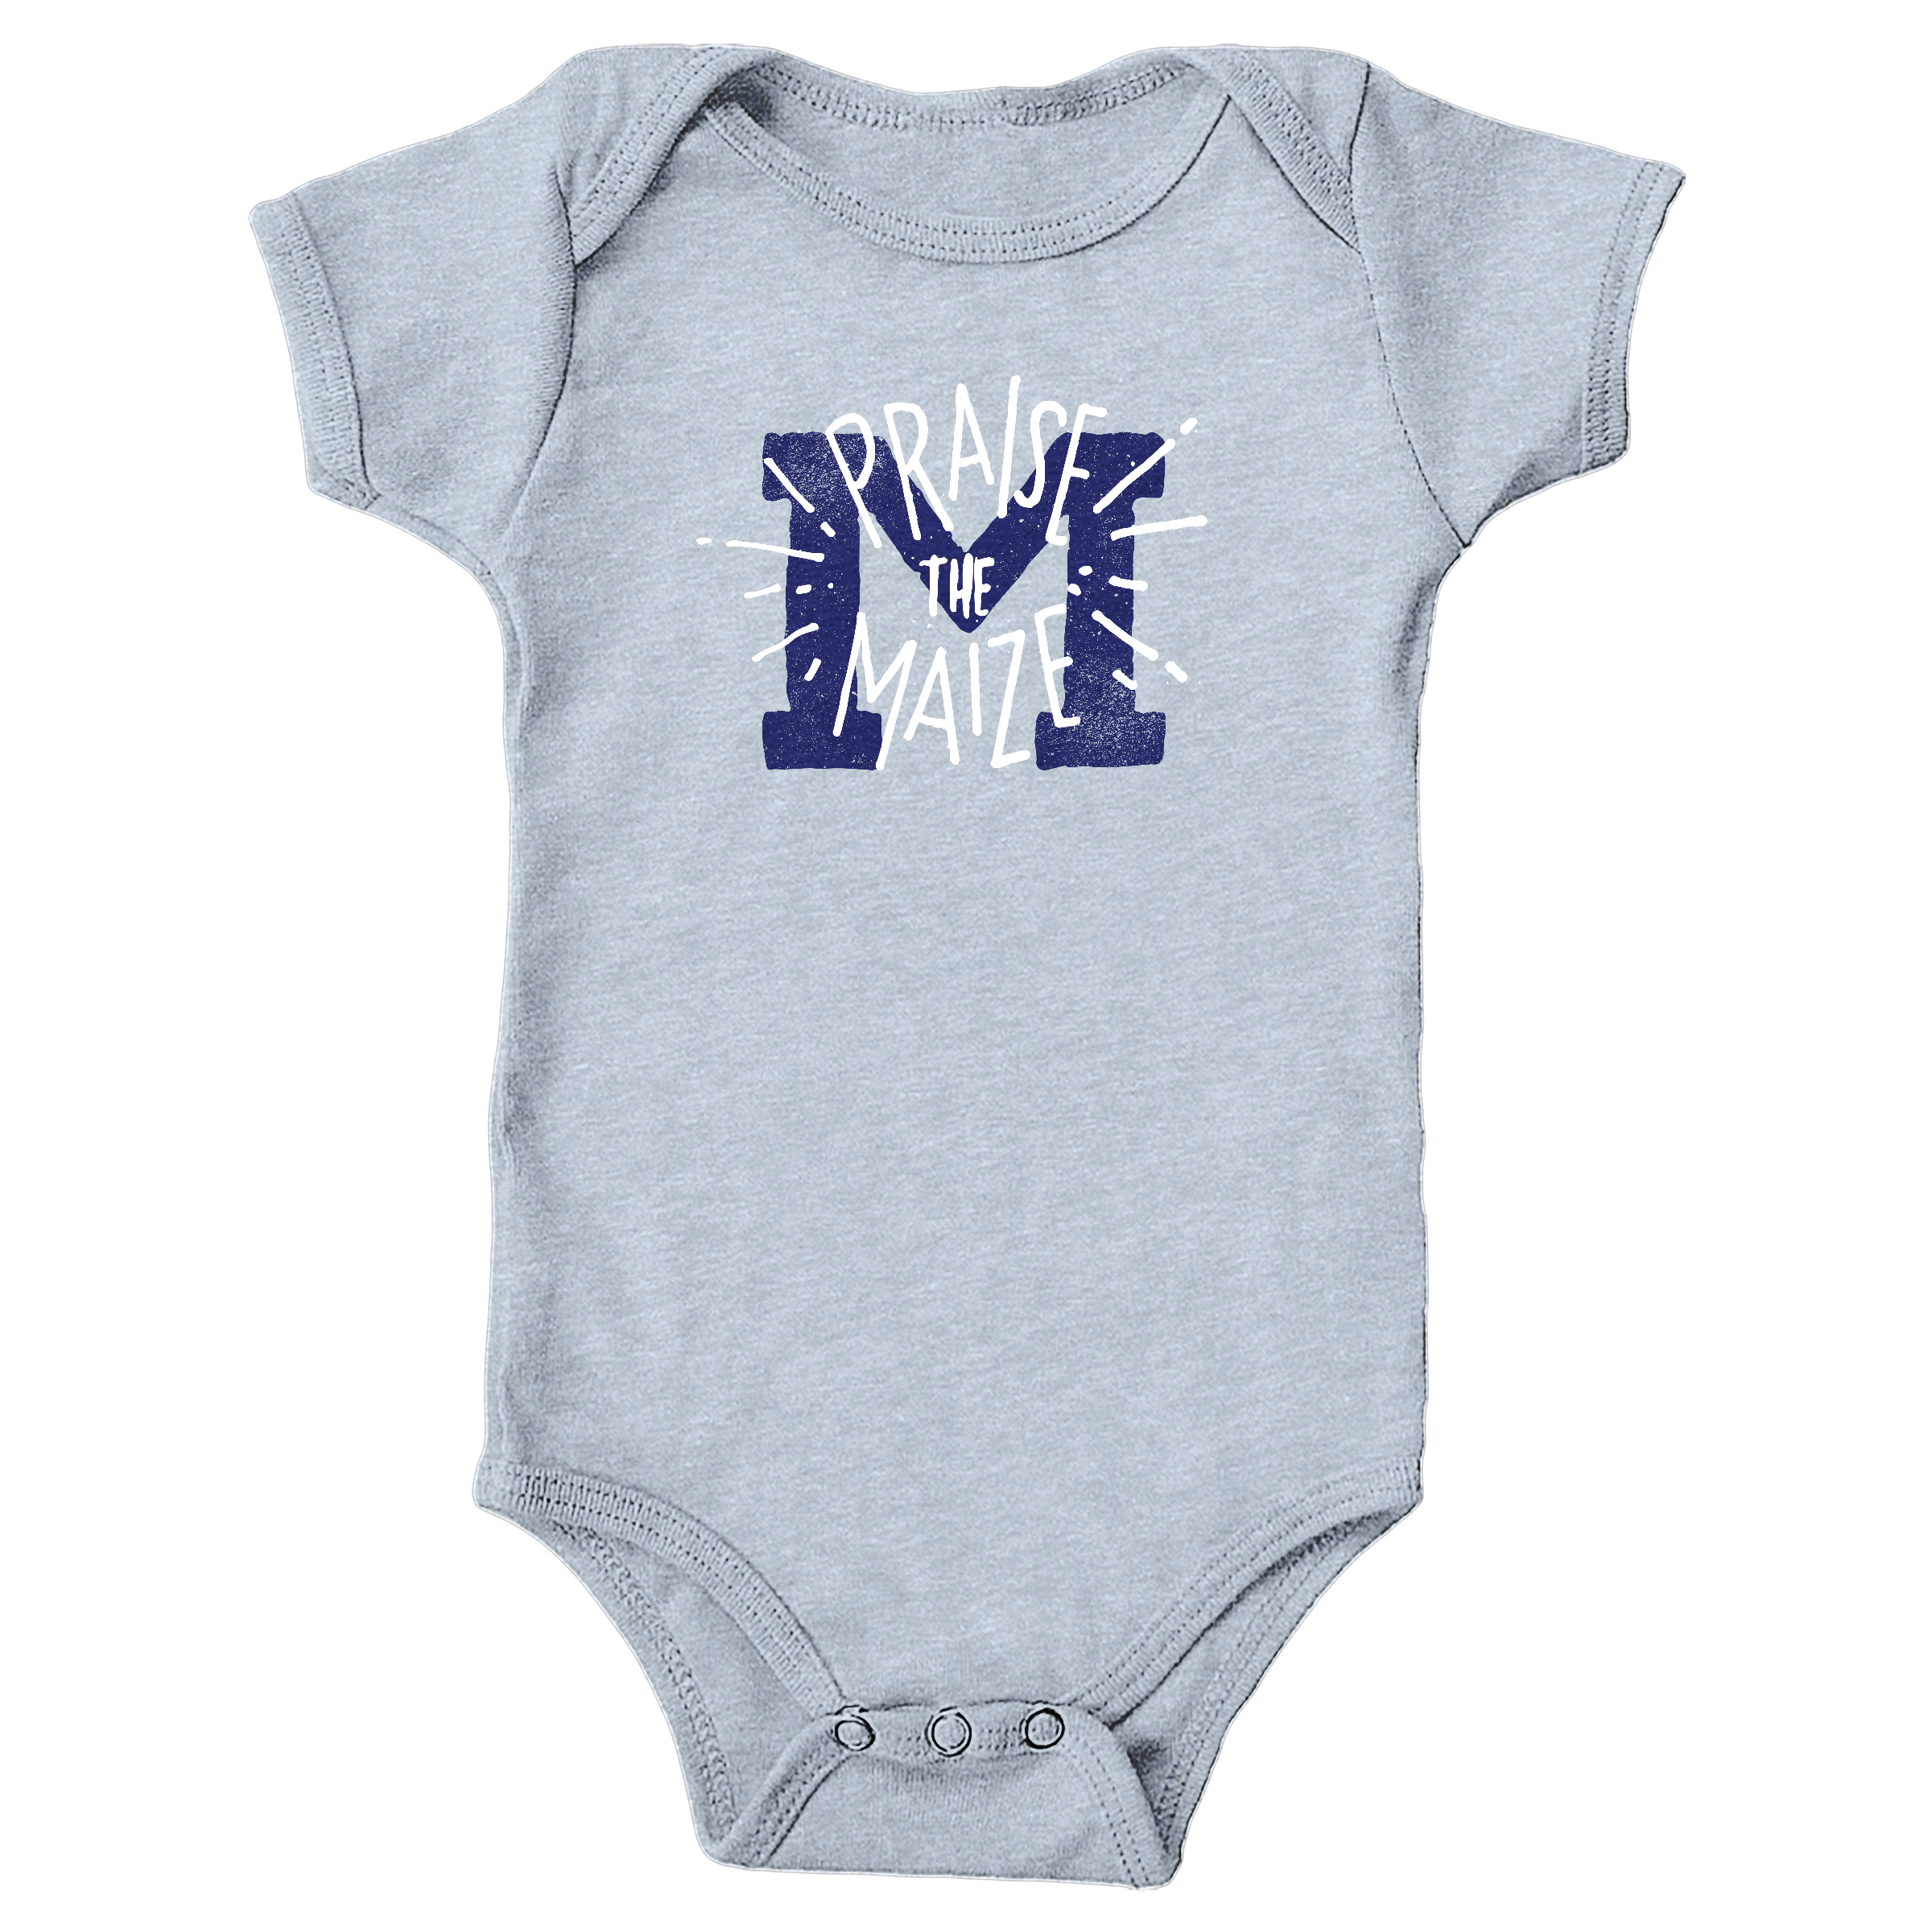 Praise The Maize Heather Grey (Onesie)